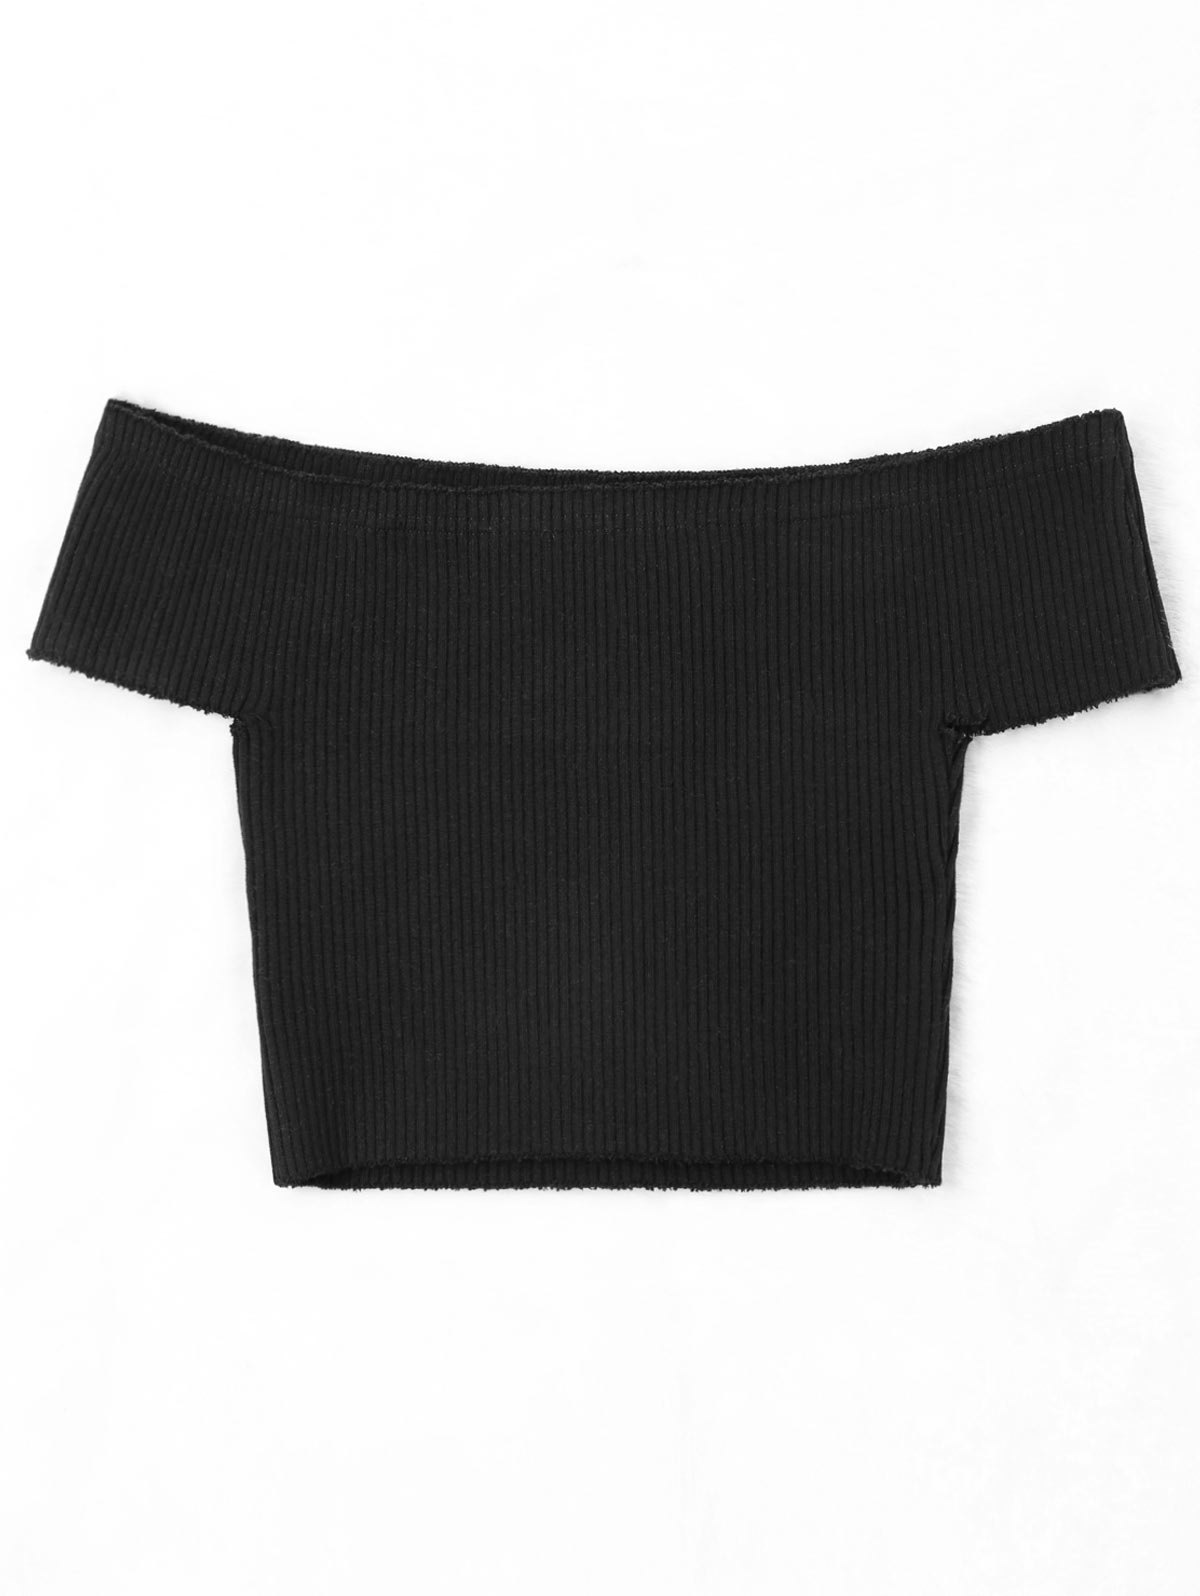 Off The Shoulder Plain Cropped Knitwear - BLACK ONE SIZE